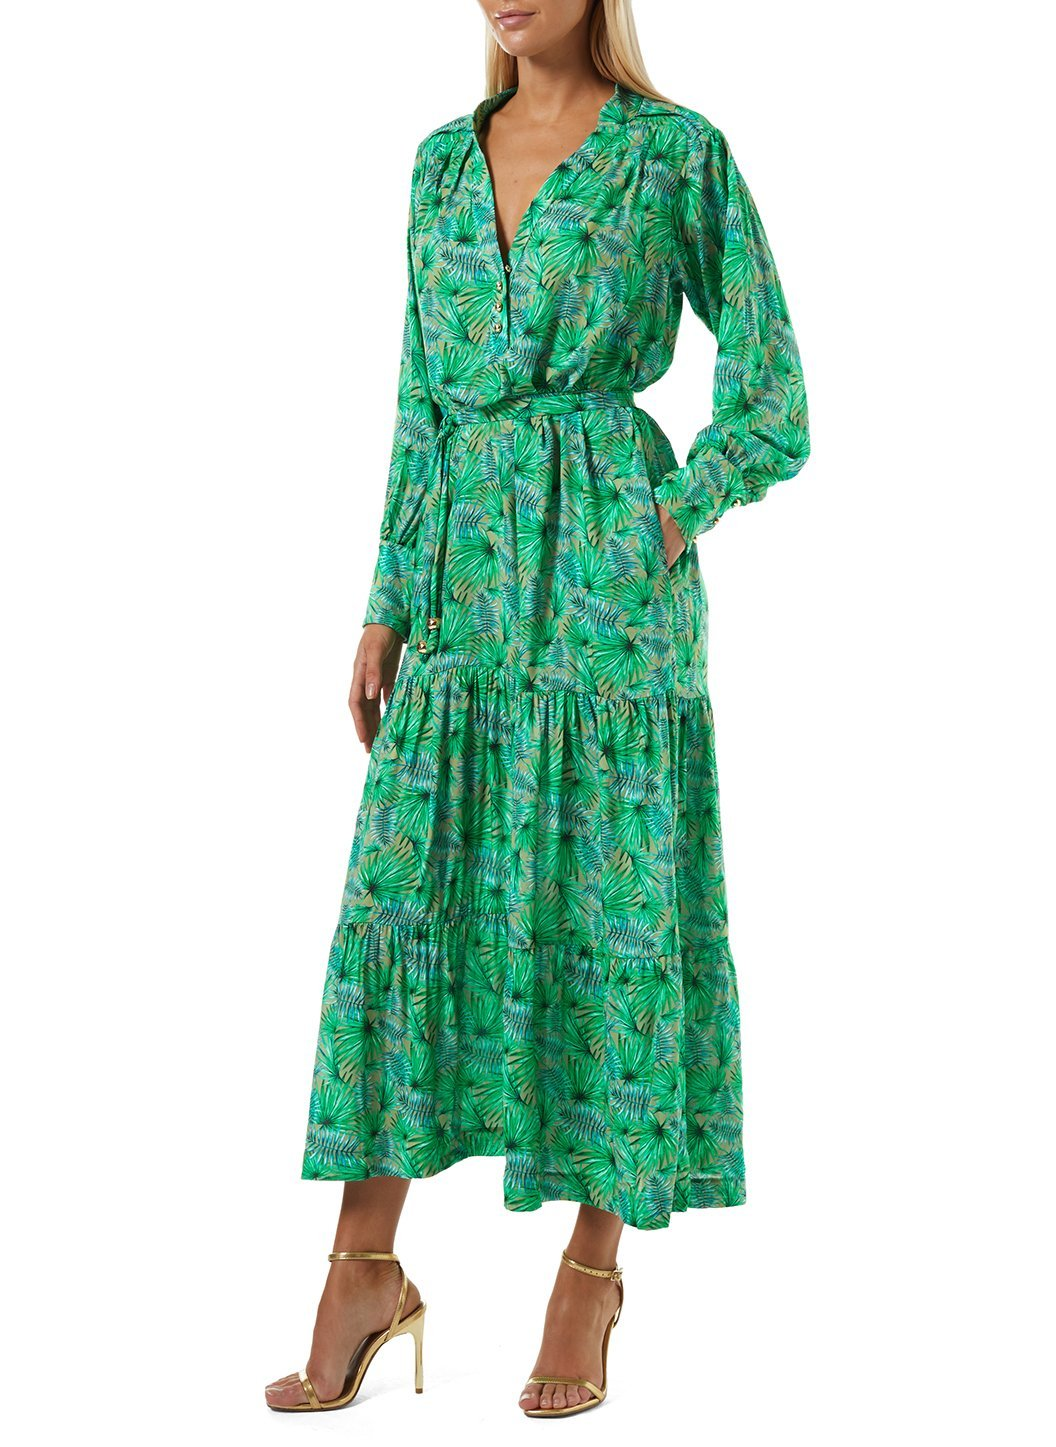 Lorikeet Fern Dress F